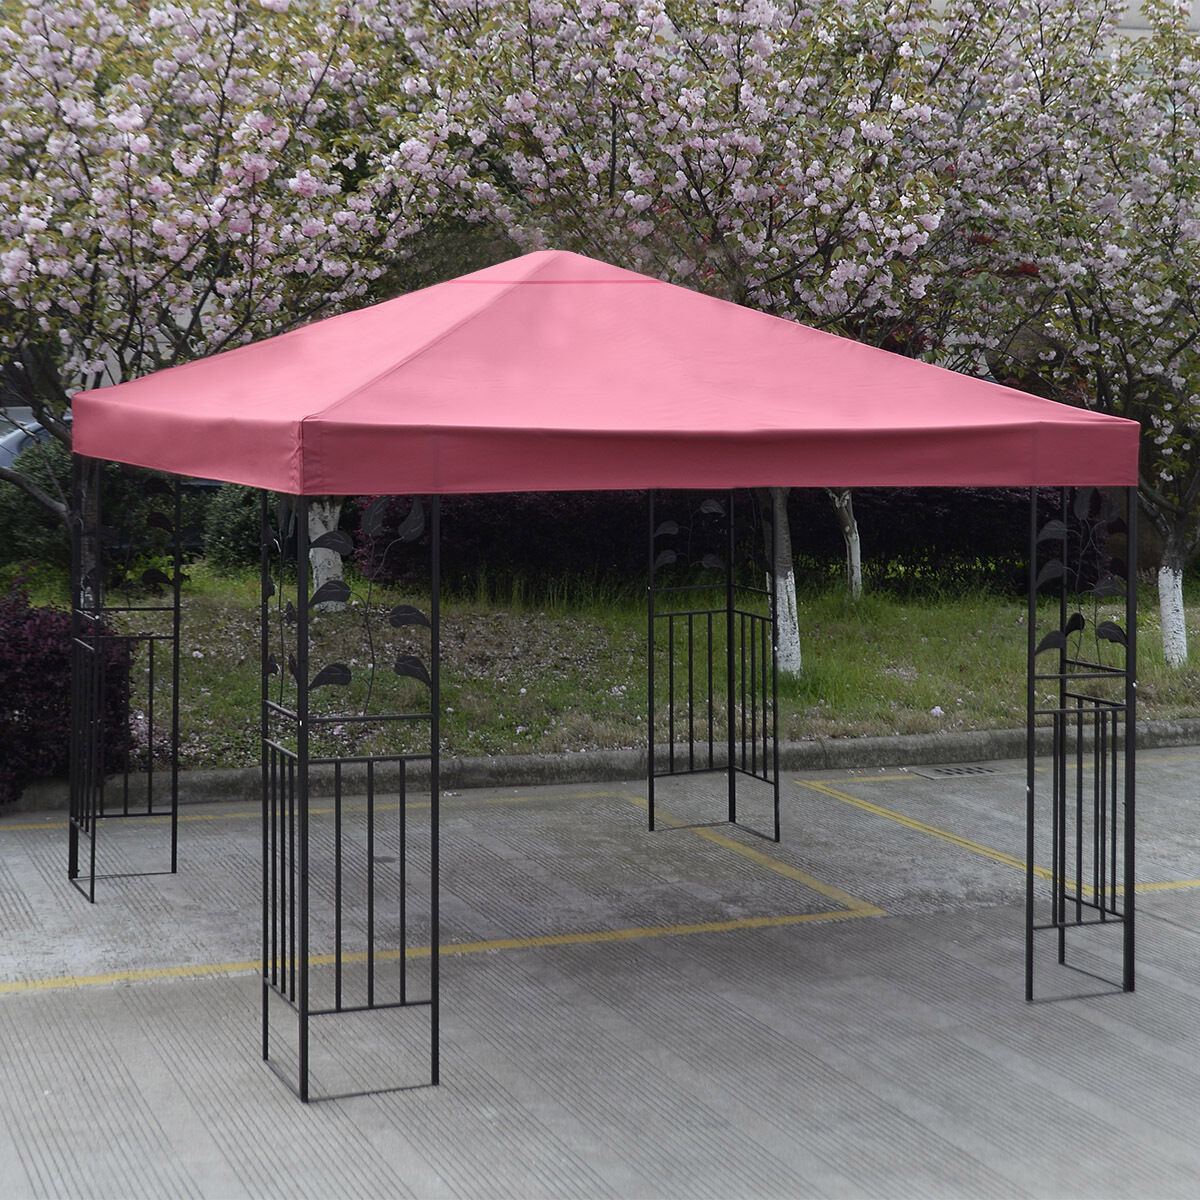 10-039-X-10-039-Gazebo-Top-Cover-Patio-Canopy-Replacement-1-Tier-or-2-Tier-3-Color-New thumbnail 12